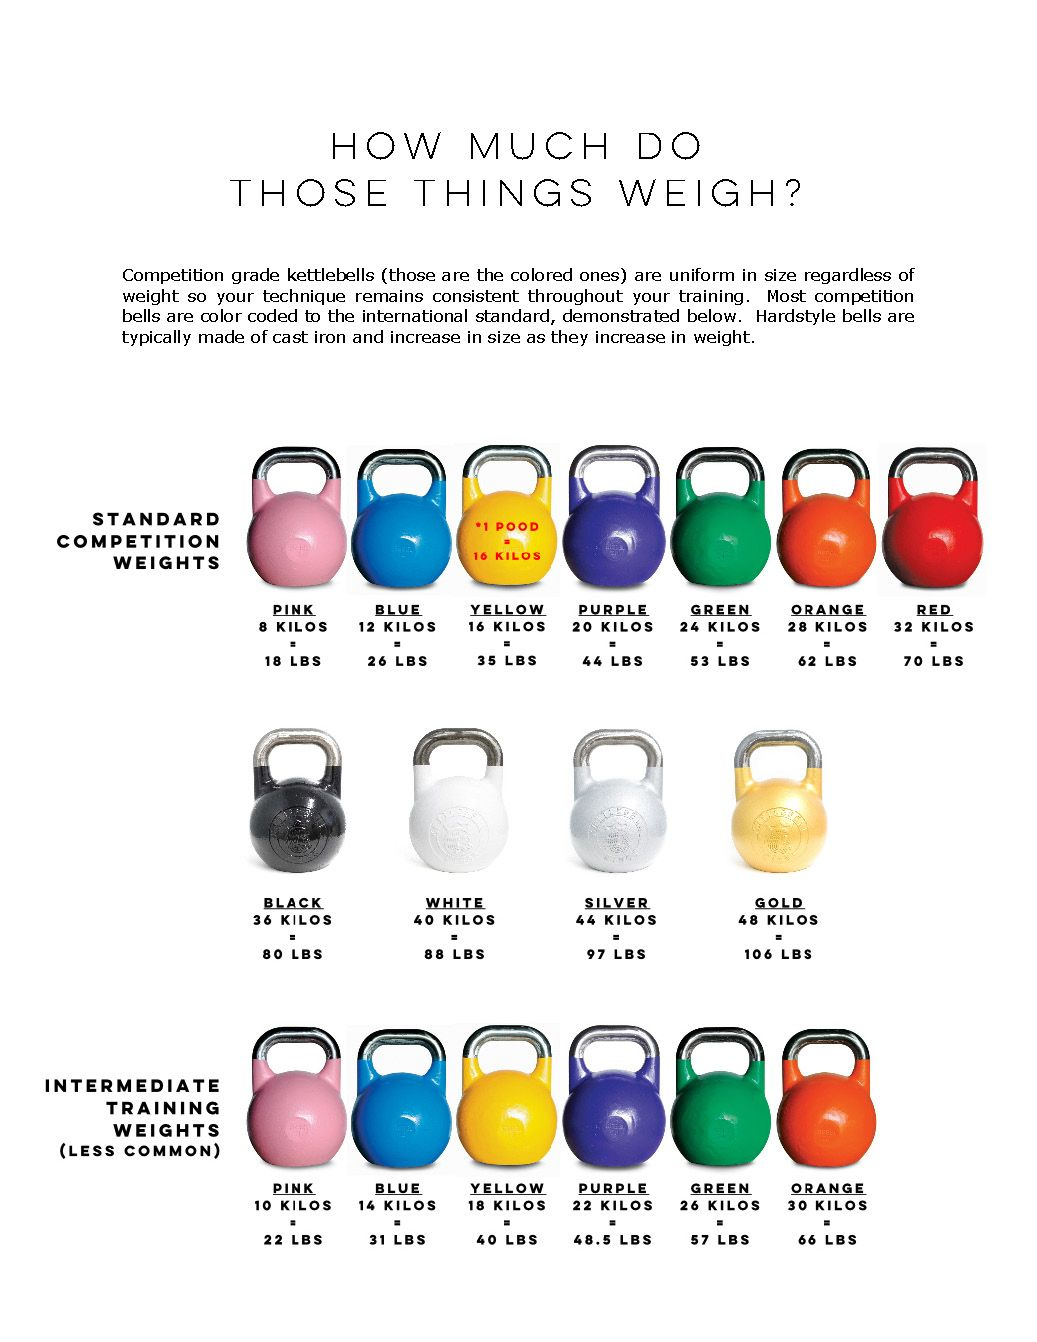 Most competition kettlebells are marked in kilos and use ...